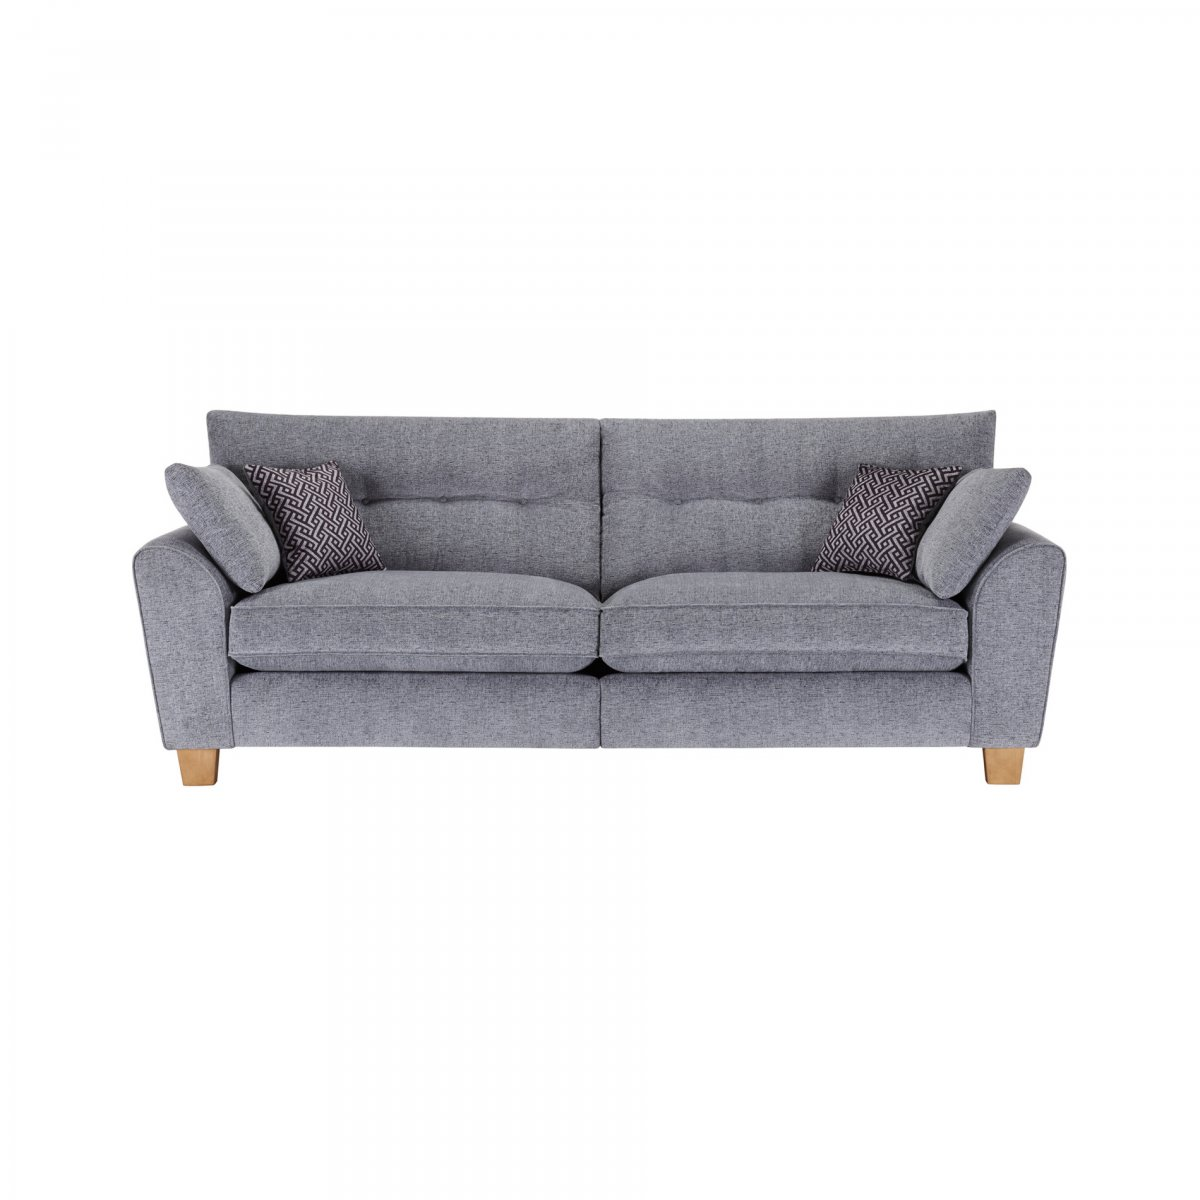 Brooke 4 Seater Sofa In Grey Grey Scatters